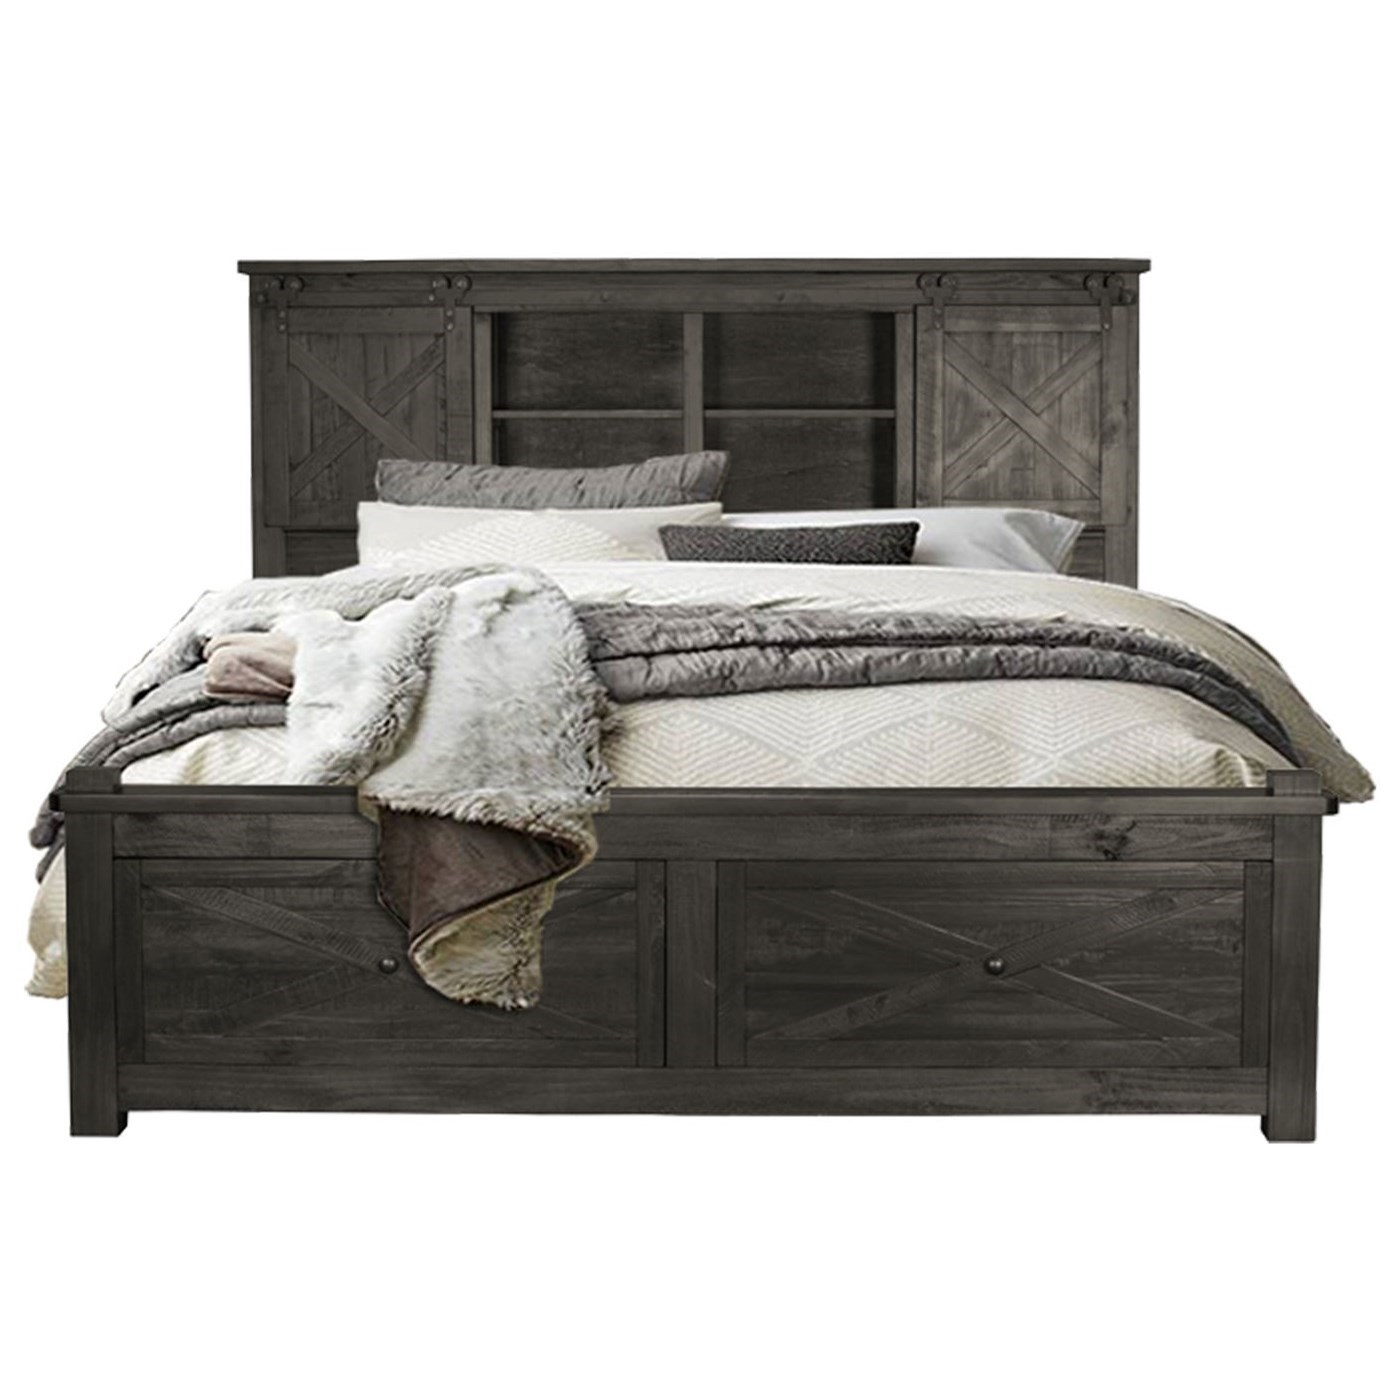 Sun Valley Queen Bookcase Bed by A-A at Walker's Furniture